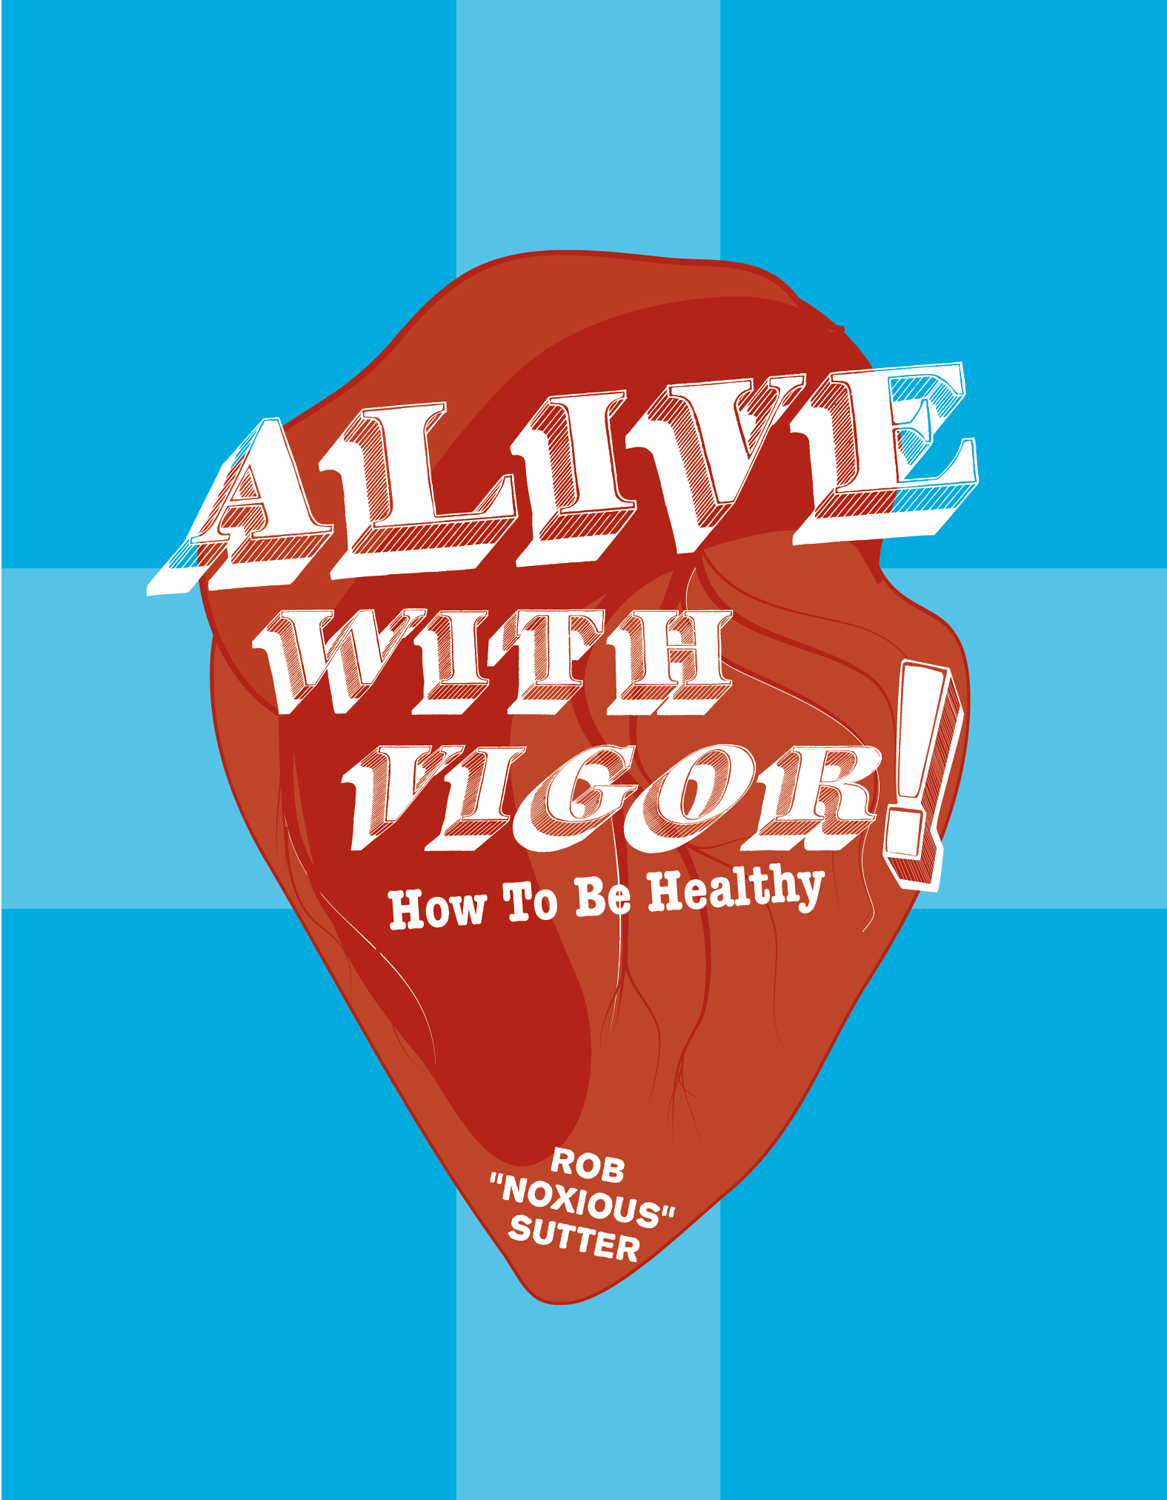 MICROCOSM PUBLISHING Alive with Vigor!     Alive With Vigor!    compiles stories of surviving—and thriving—from a wide spectrum of contributors. Deeply personal essays recount matters of preventative health care, the hard decisions we each have to make, Do It Yourself health care, and how to deal with extracting health care from government/corporate health care systems.   Alive With Vigor!   has a special focus on queer, youth, and transgendered people, recognizing that everyone has different health care needs. Finally a how to book where you can put the advice directly to use in your life!